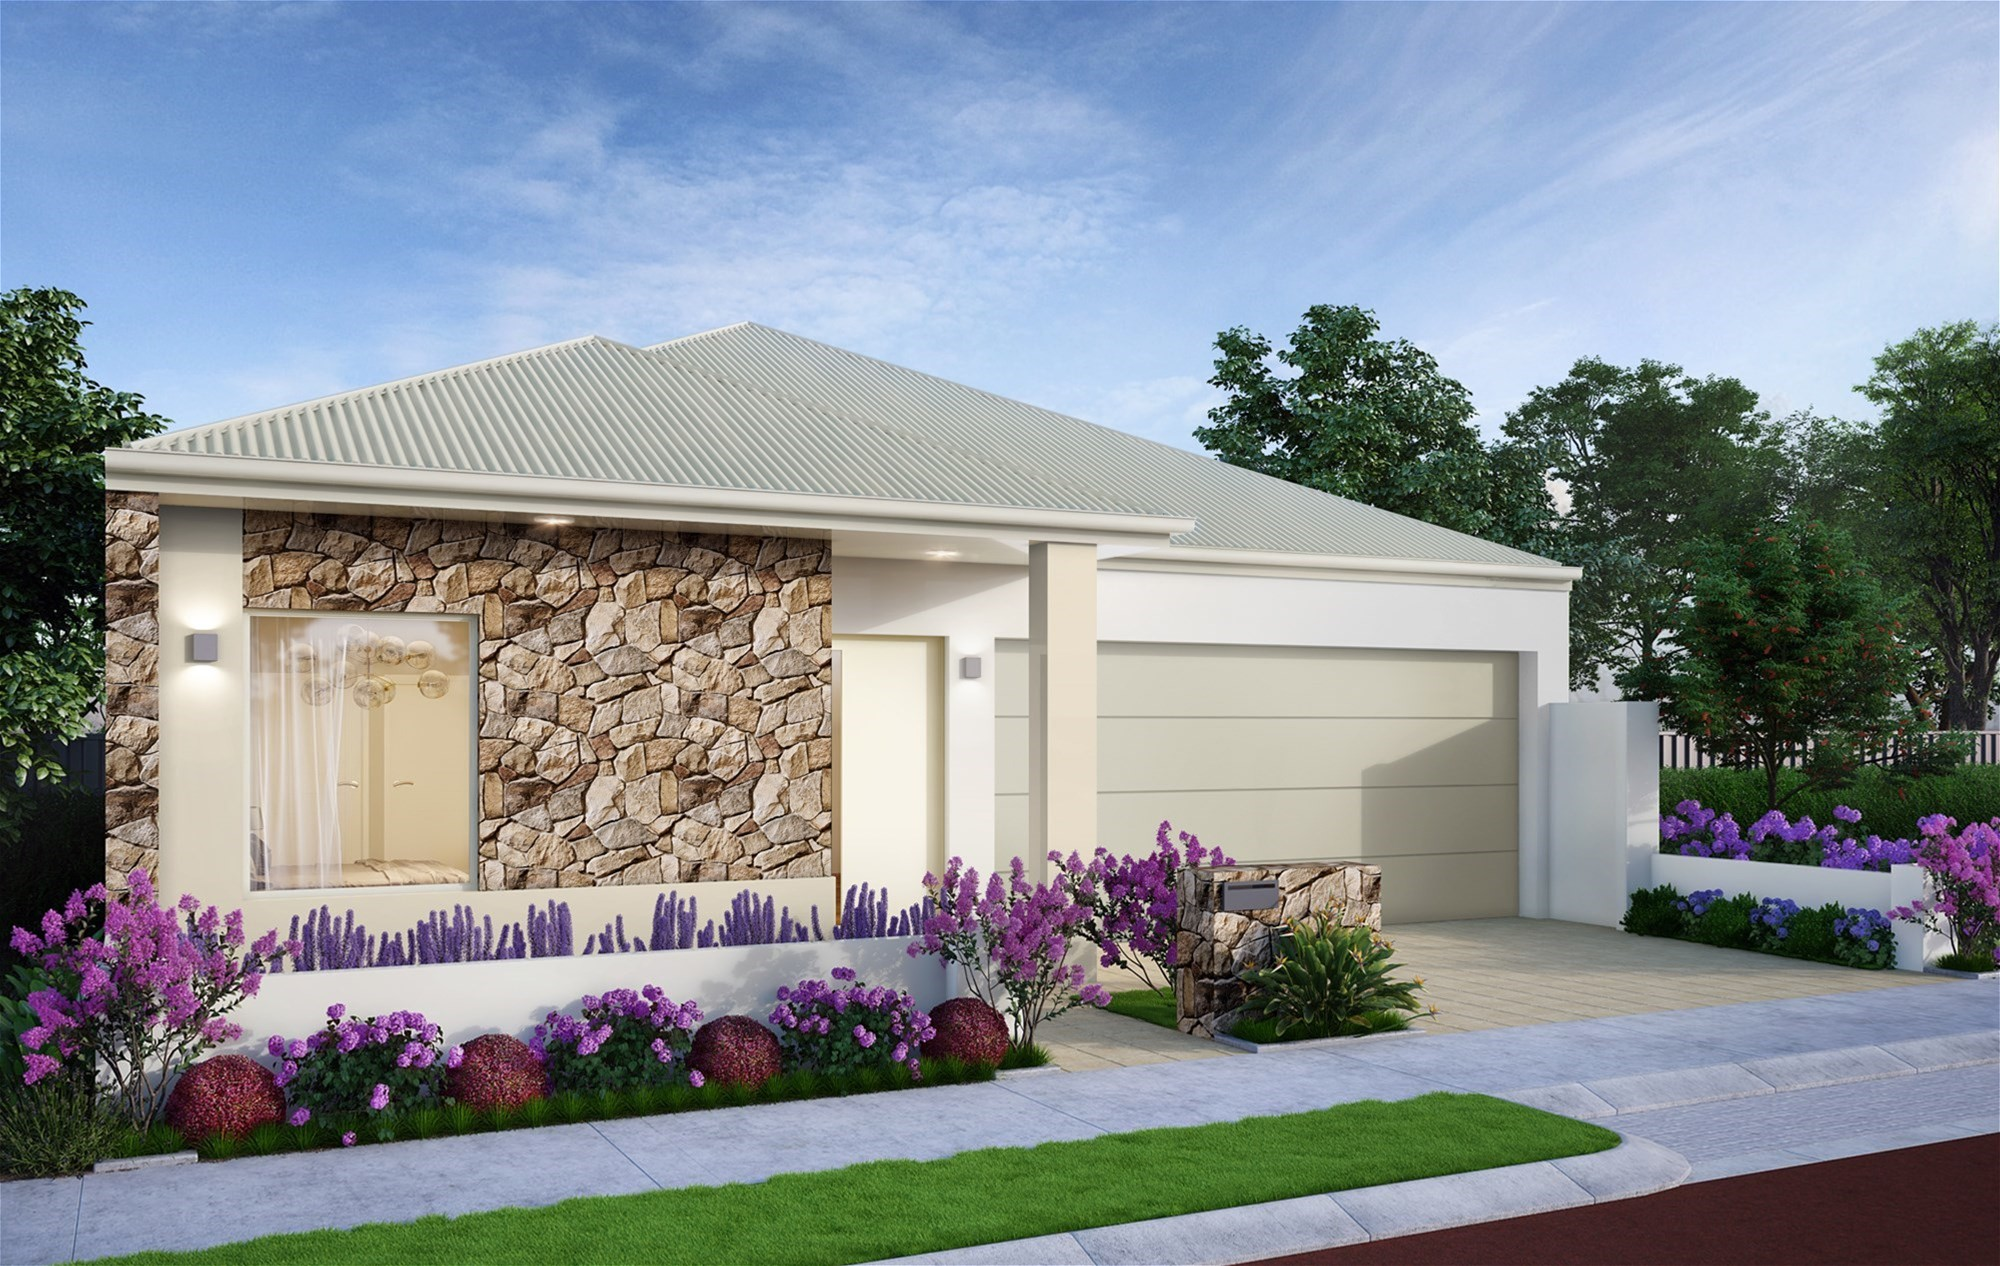 The Green Fairway Village   Over 55s living